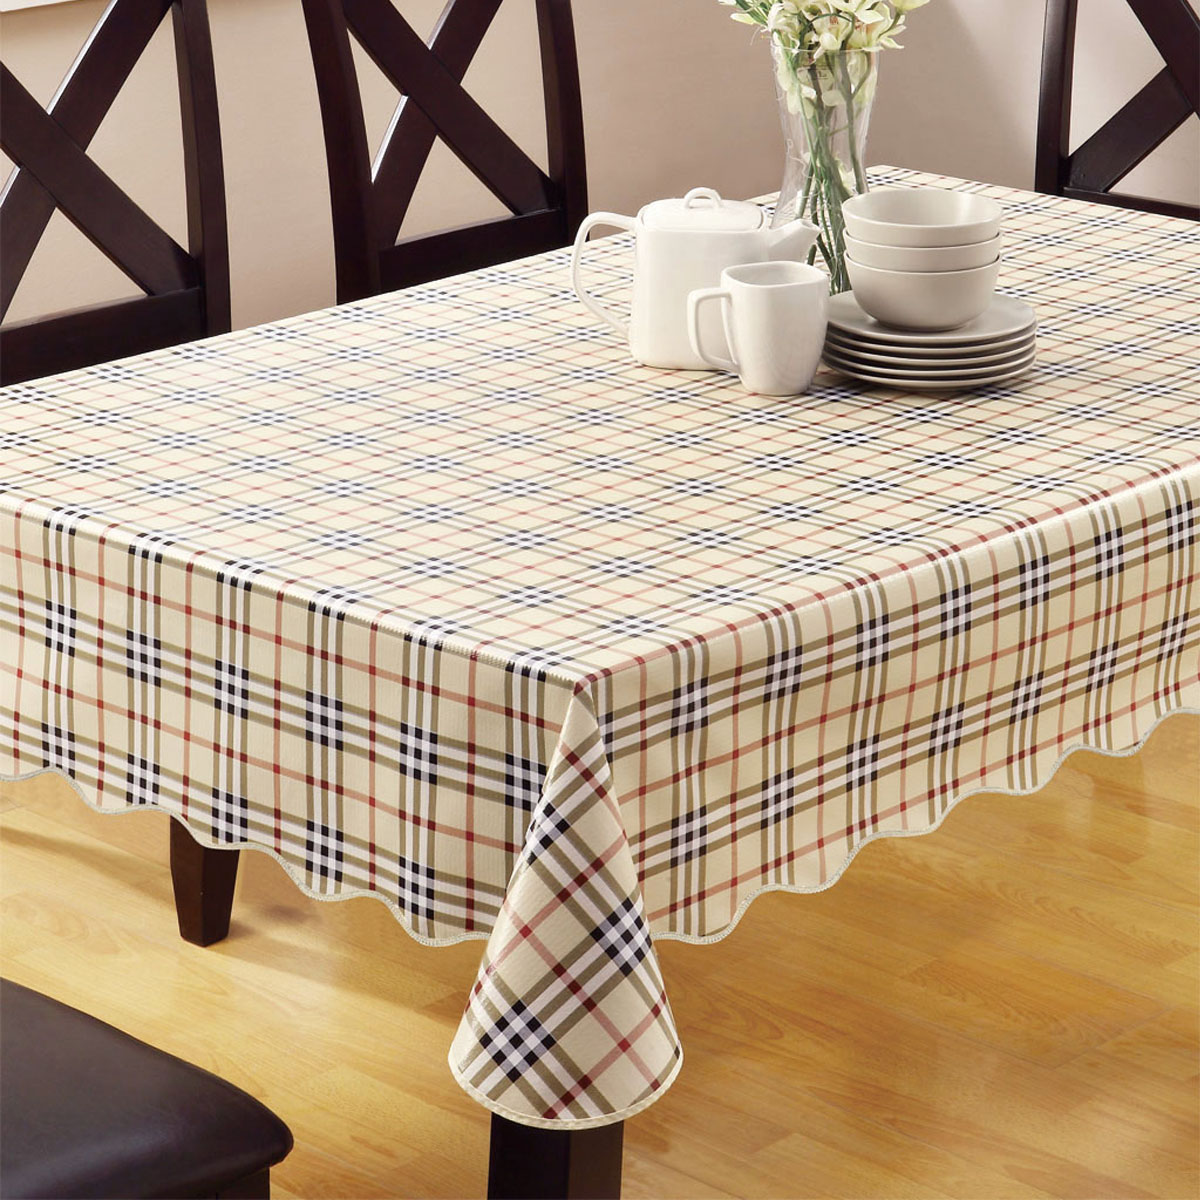 Buy Coffee Table Cloth Table Cloth Round Coffee Table Mat Pvc Plastic Table  Cloth Tablecloth Pvc Plastic Tablecloths Disposable Water In Cheap Price On  ...